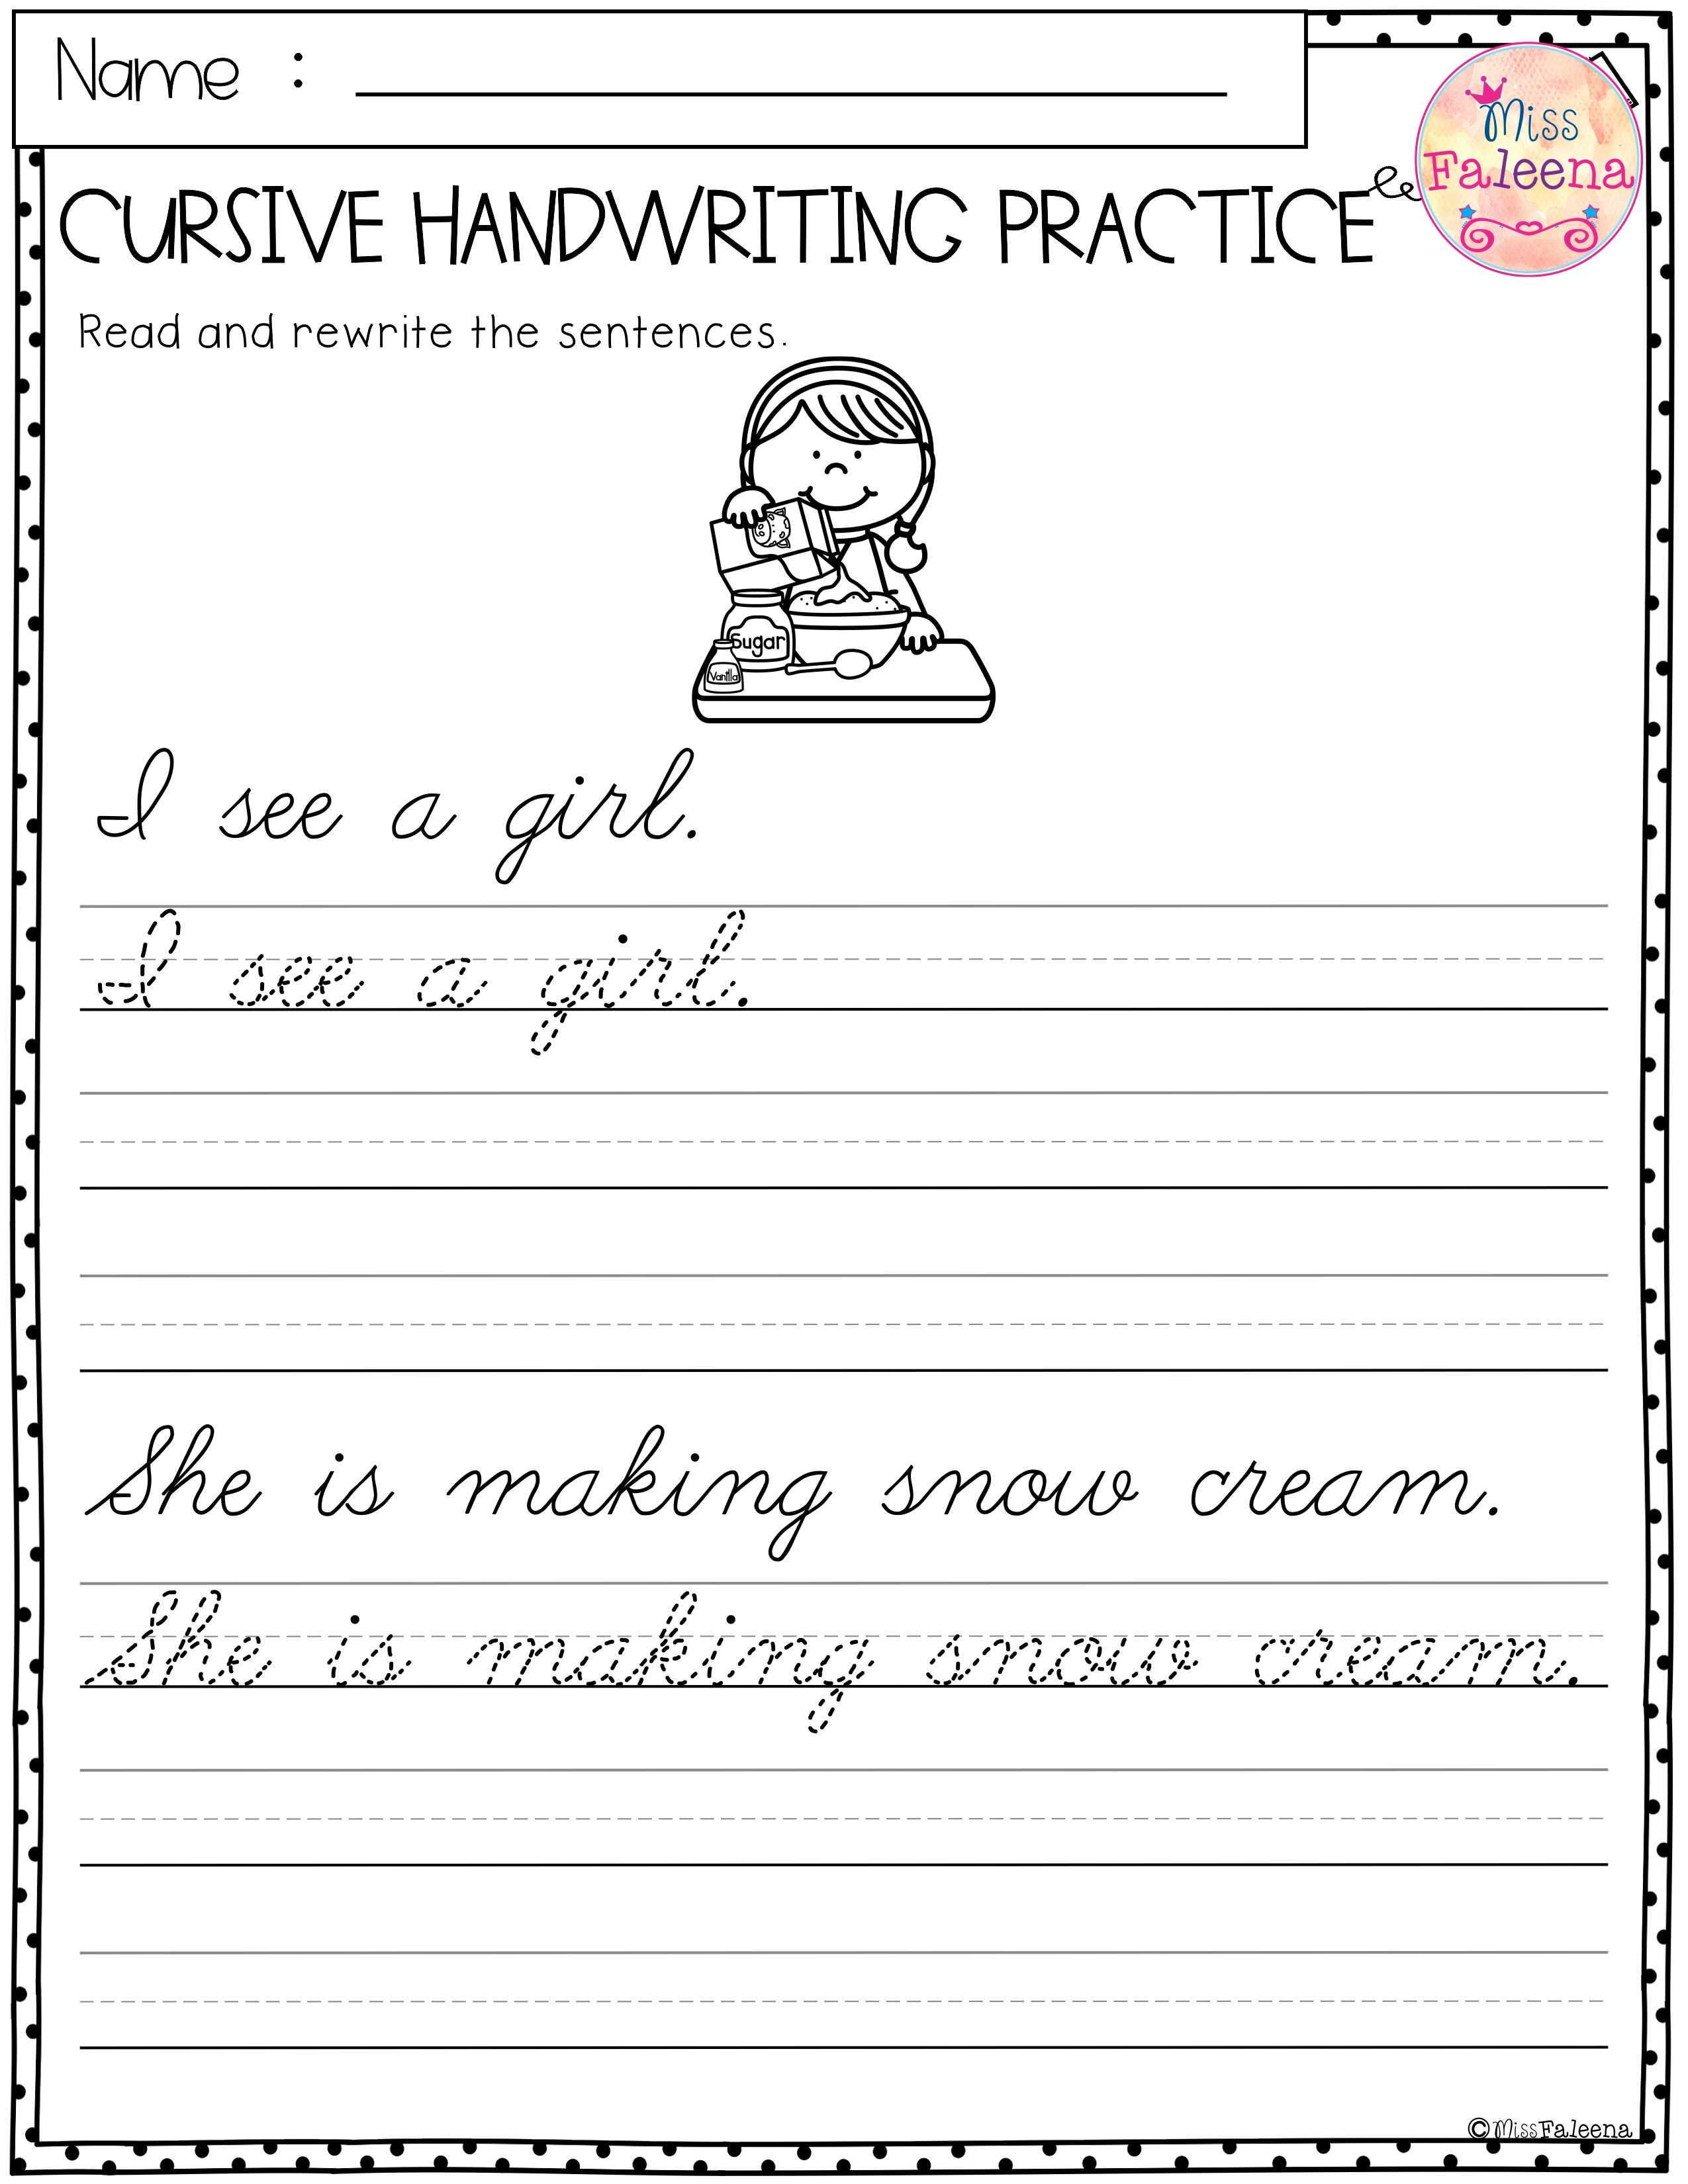 Winter Cursive Handwriting Practice This Product Has 20 Pages Of Handwriting Worksheets Cursive Handwriting Practice Handwriting Practice Cursive Handwriting [ 3300 x 2550 Pixel ]